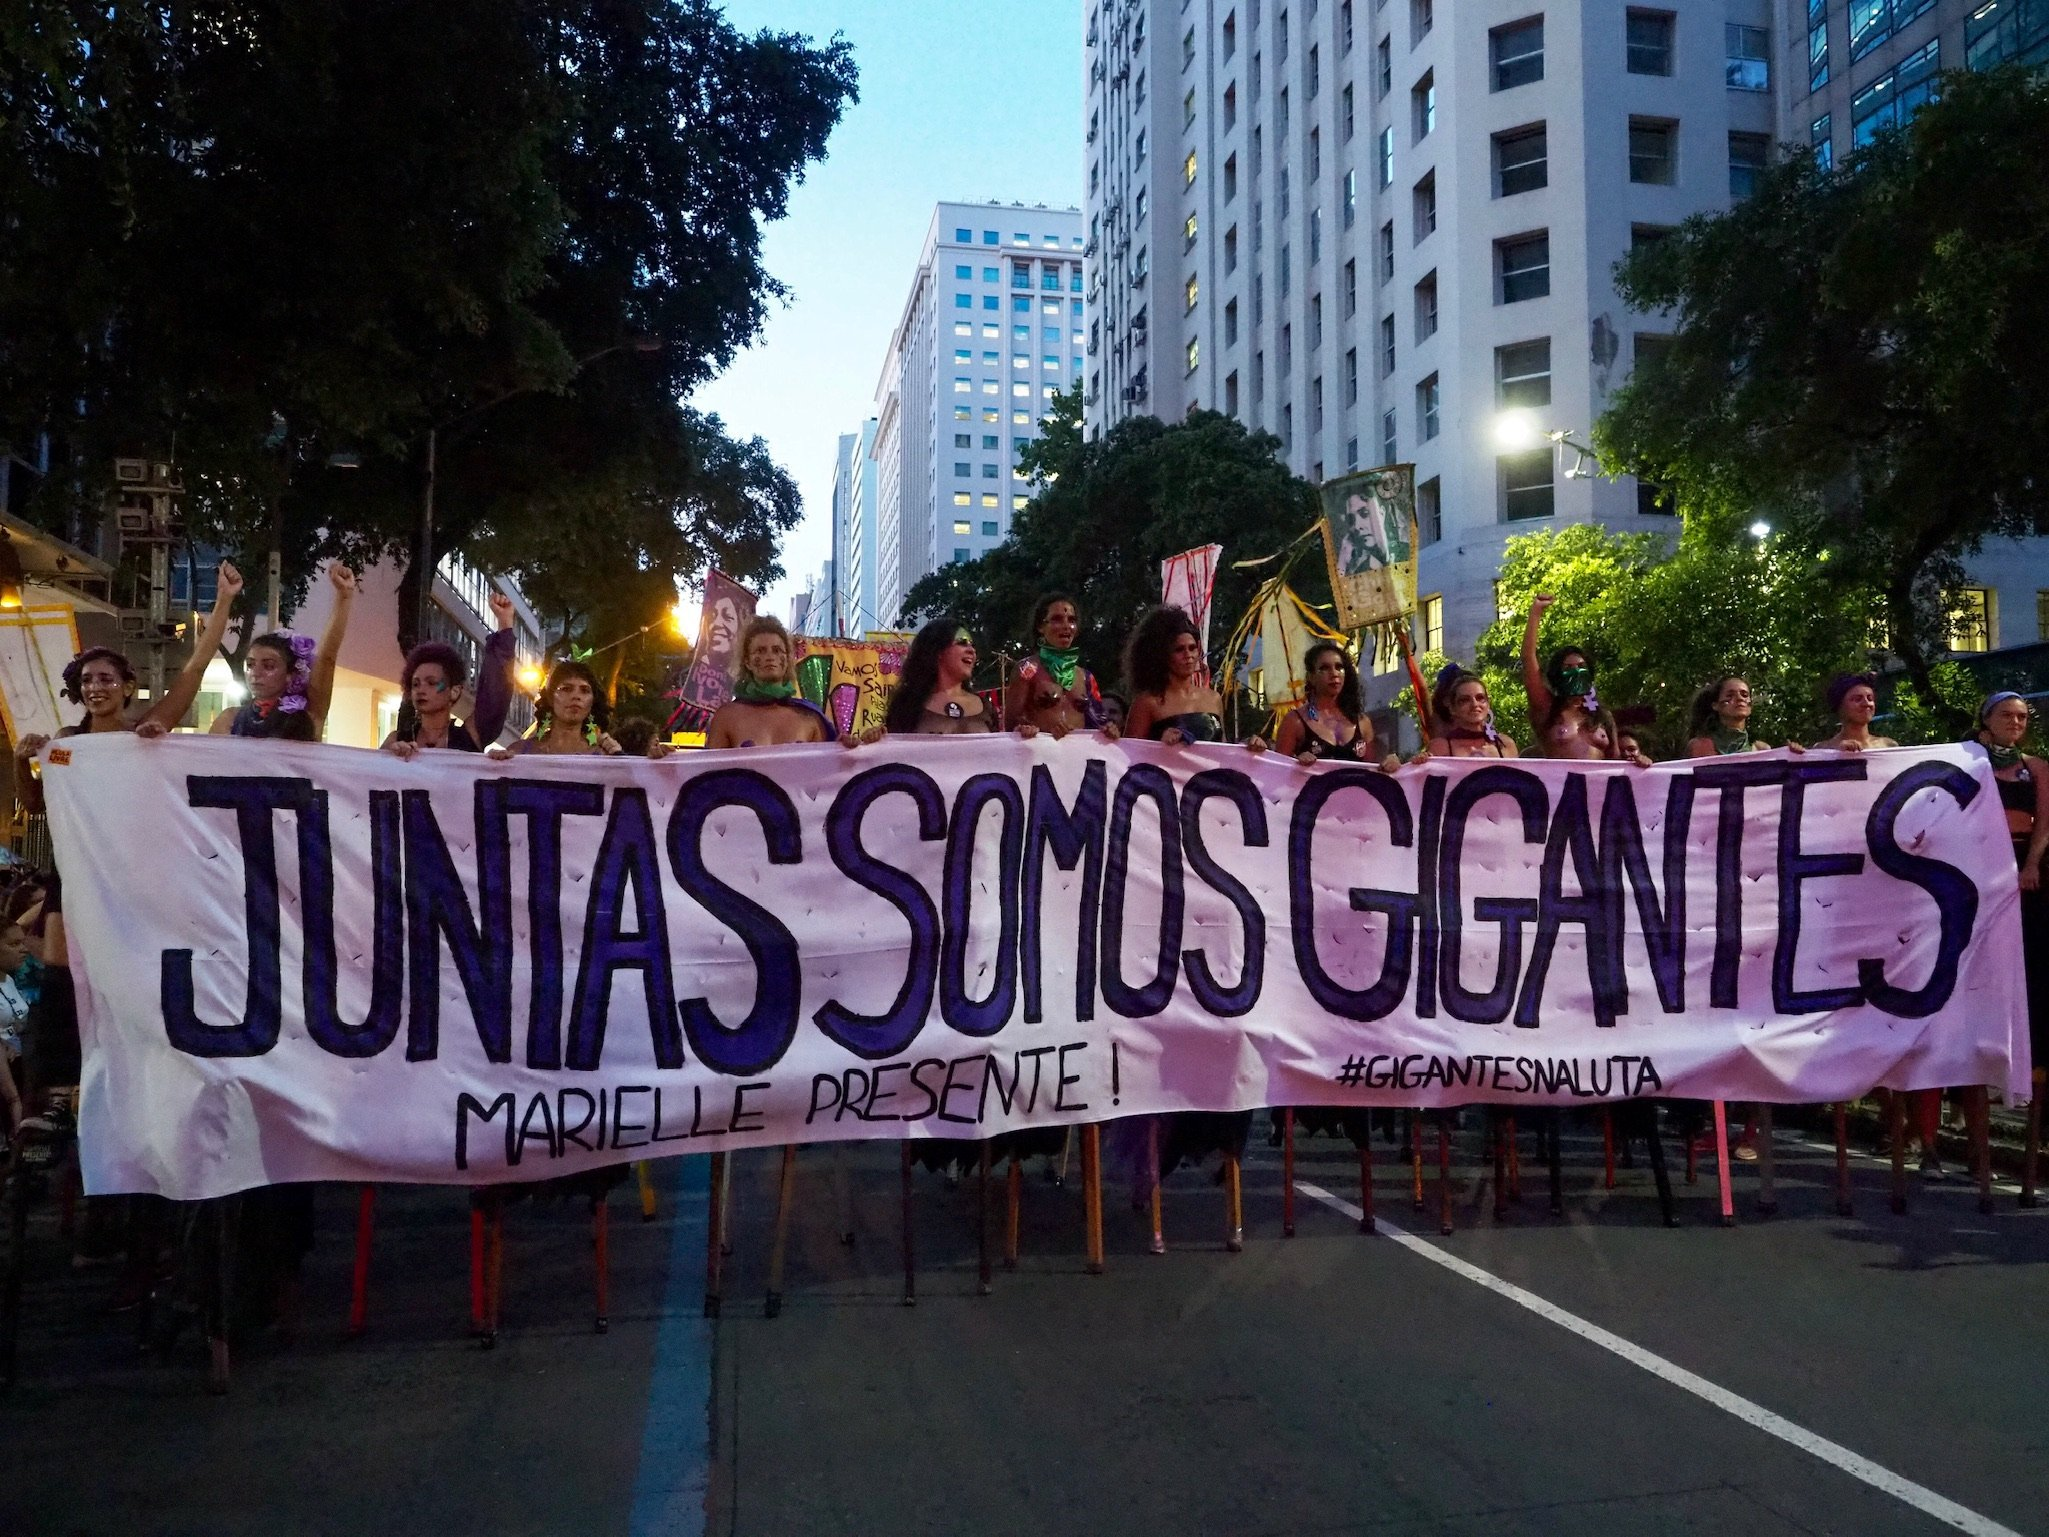 "This photograph shows an outdoor scene from the shooting of the film 'Marielle's Legacy Will Not Die'. Around 14-15 cis and trans women can be seen walking on tall stilts in a single row on a street of a Brazilian city. The row of women stretches across the street and the marchers are holding a huge cloth banner that says in large Portuguese lettering ""Juntas somos gigantes"". In English this translates to 'together we are giants'. Below the main banner text is smaller text that says ""Marielle presente!"" and ""#gigantesnaluta"". All the text on the banner is in bold capital letters. The banner runs across the row of women and covers them such that only their necks and faces are visible above the banner and the stilts below. A crowd of people can be seen behind the women carrying more posters and banners. In the background are trees lining the street and tall buildings against an early evening blue sky. Photo credit: Pilar Rodriguez"